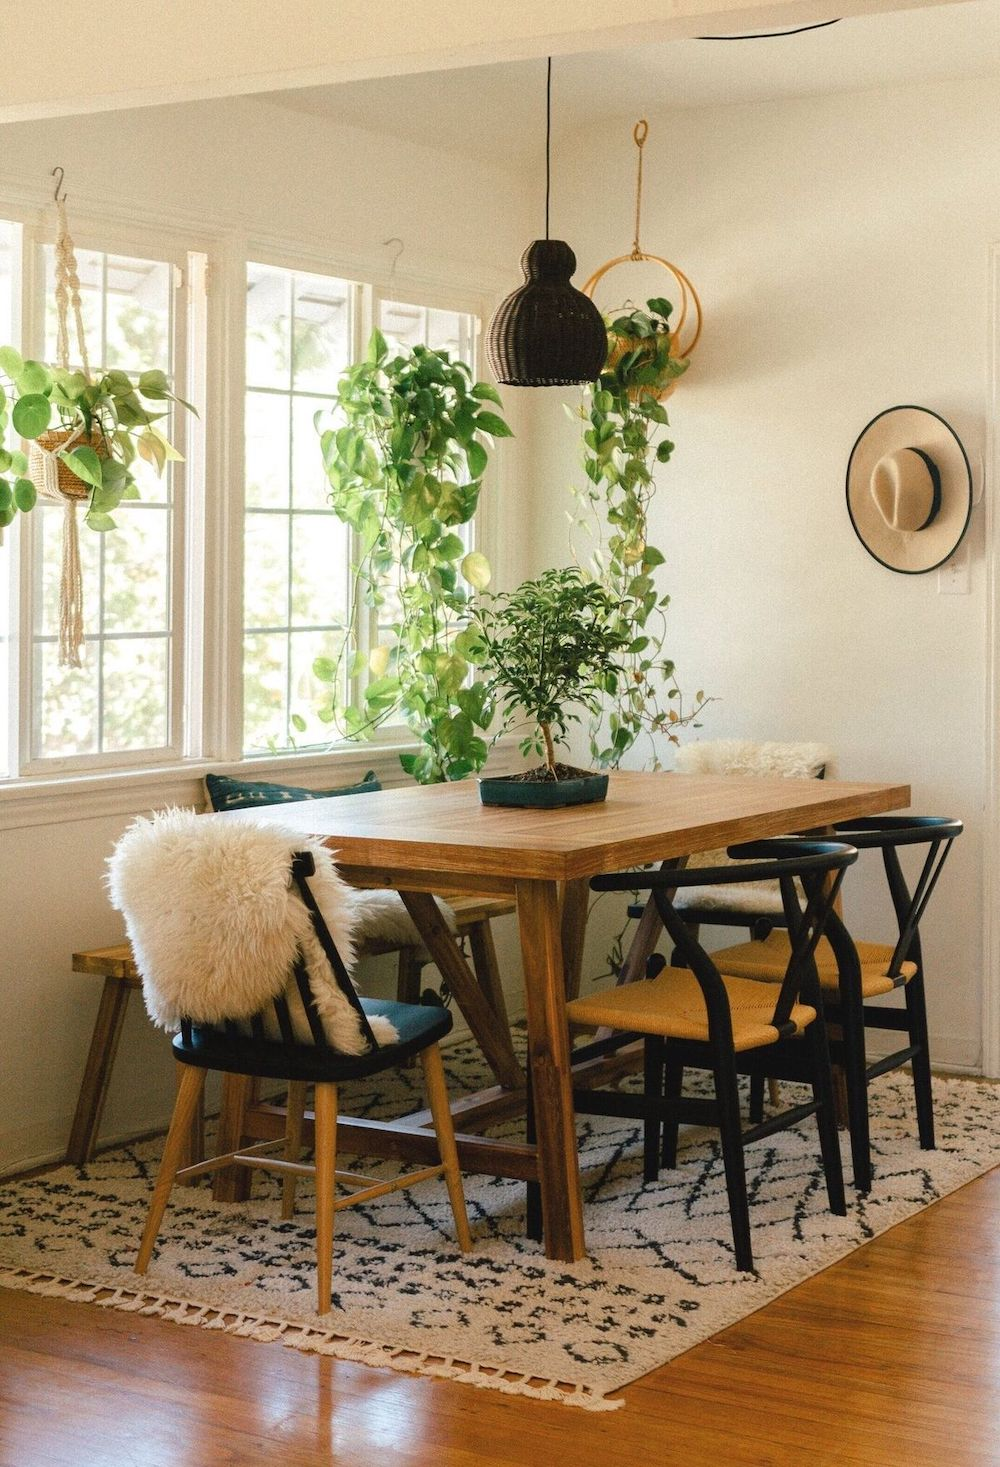 Bohemian Dining Table Set Off 52, Bohemian Style Dining Room